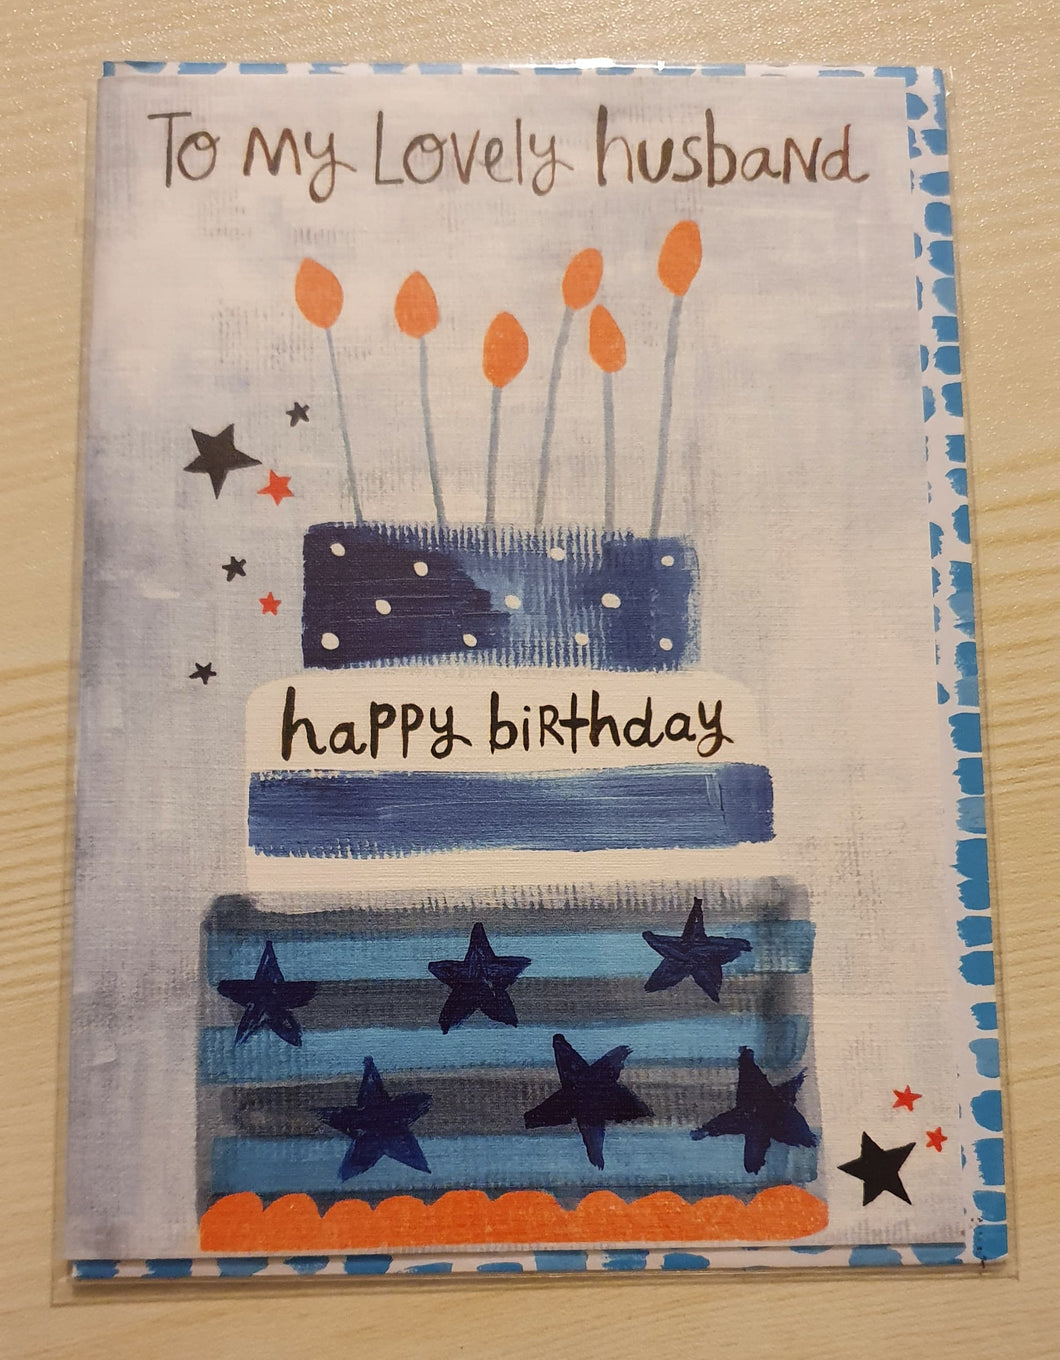 To my Lovely Husband Birthday Card